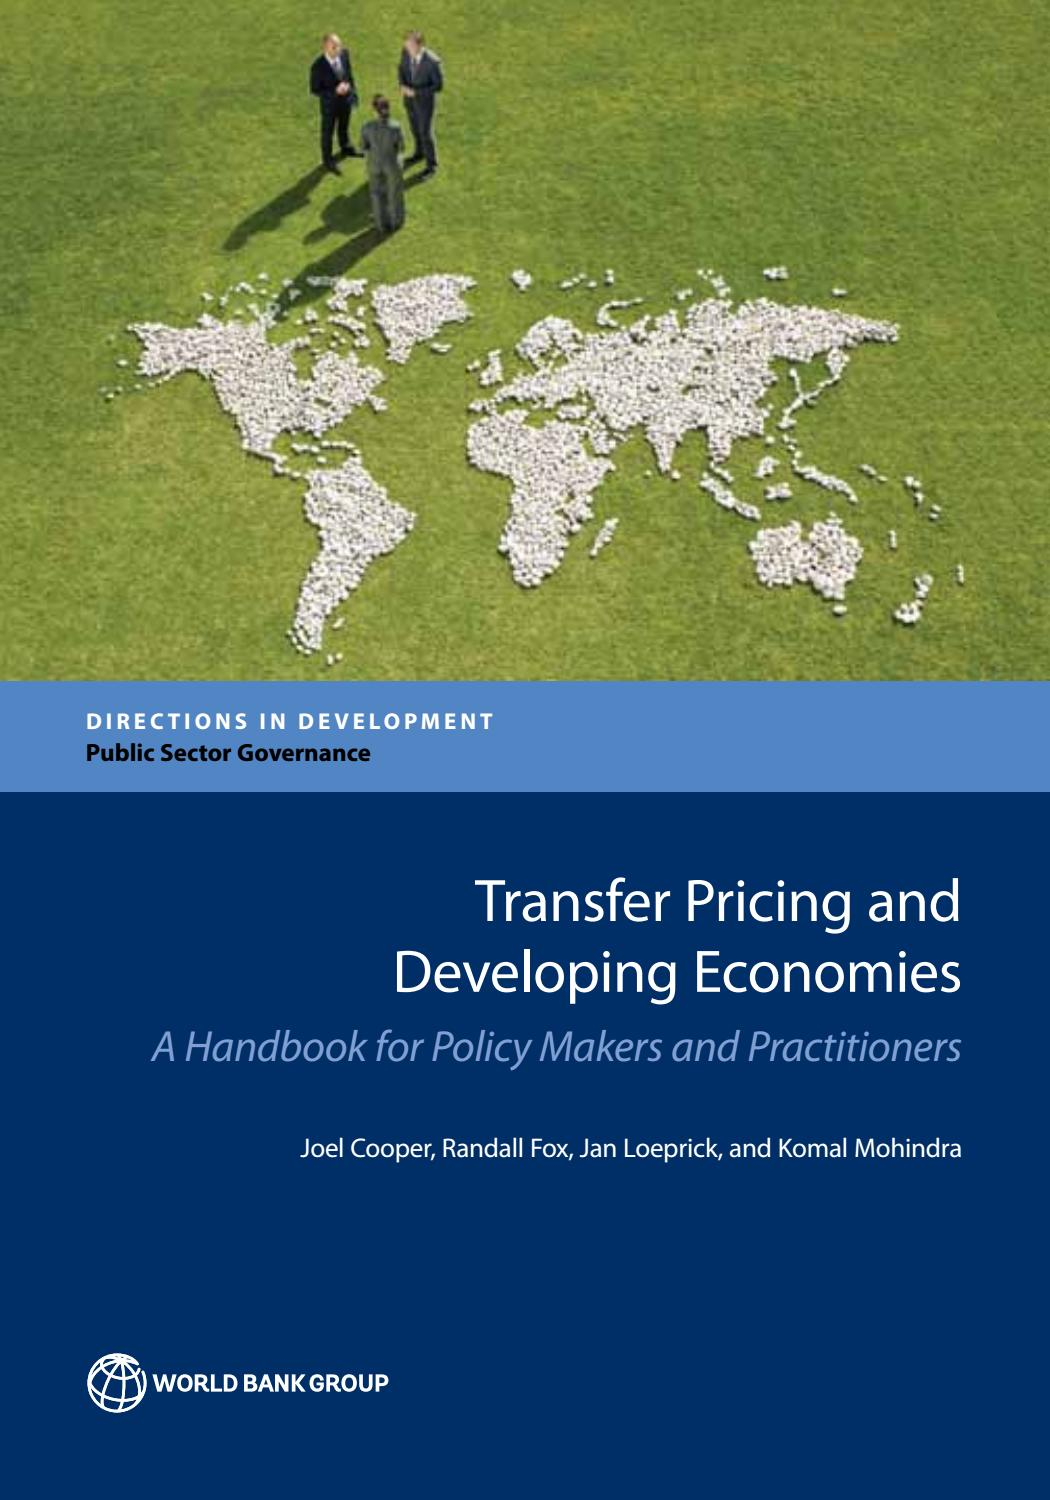 Transfer Pricing and Developing Economies by World Bank Publications - issuu 3f7bdc4ae22